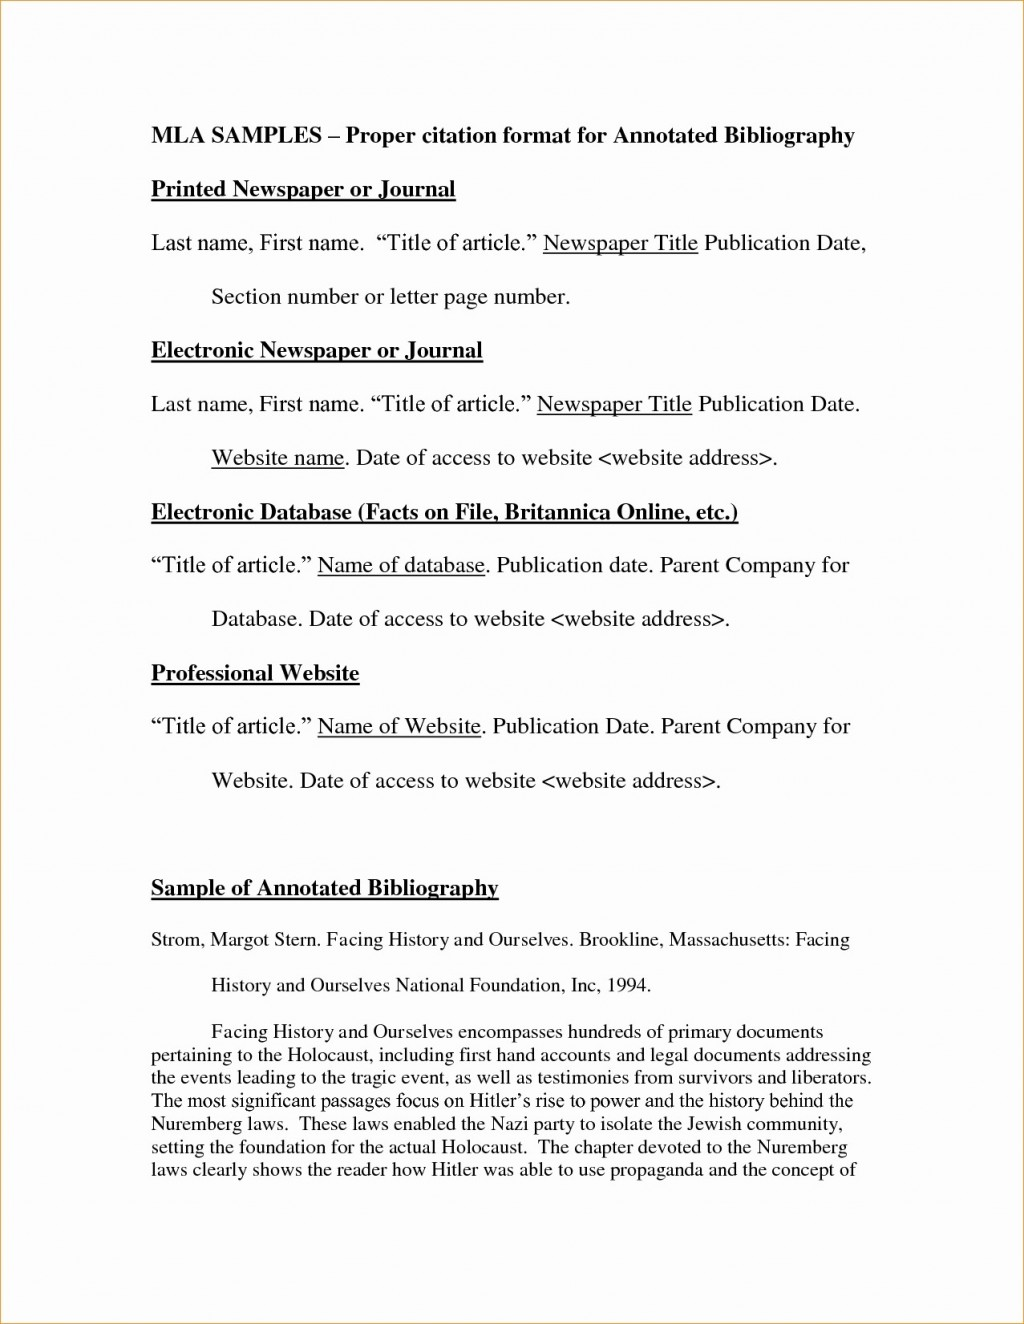 022 Essay Example Mla First Page After The Title Apa Outline Correct Format Citing Letter Best Formatted Awesome Cit Unique Proper Pdf Paper College Argumentative Large